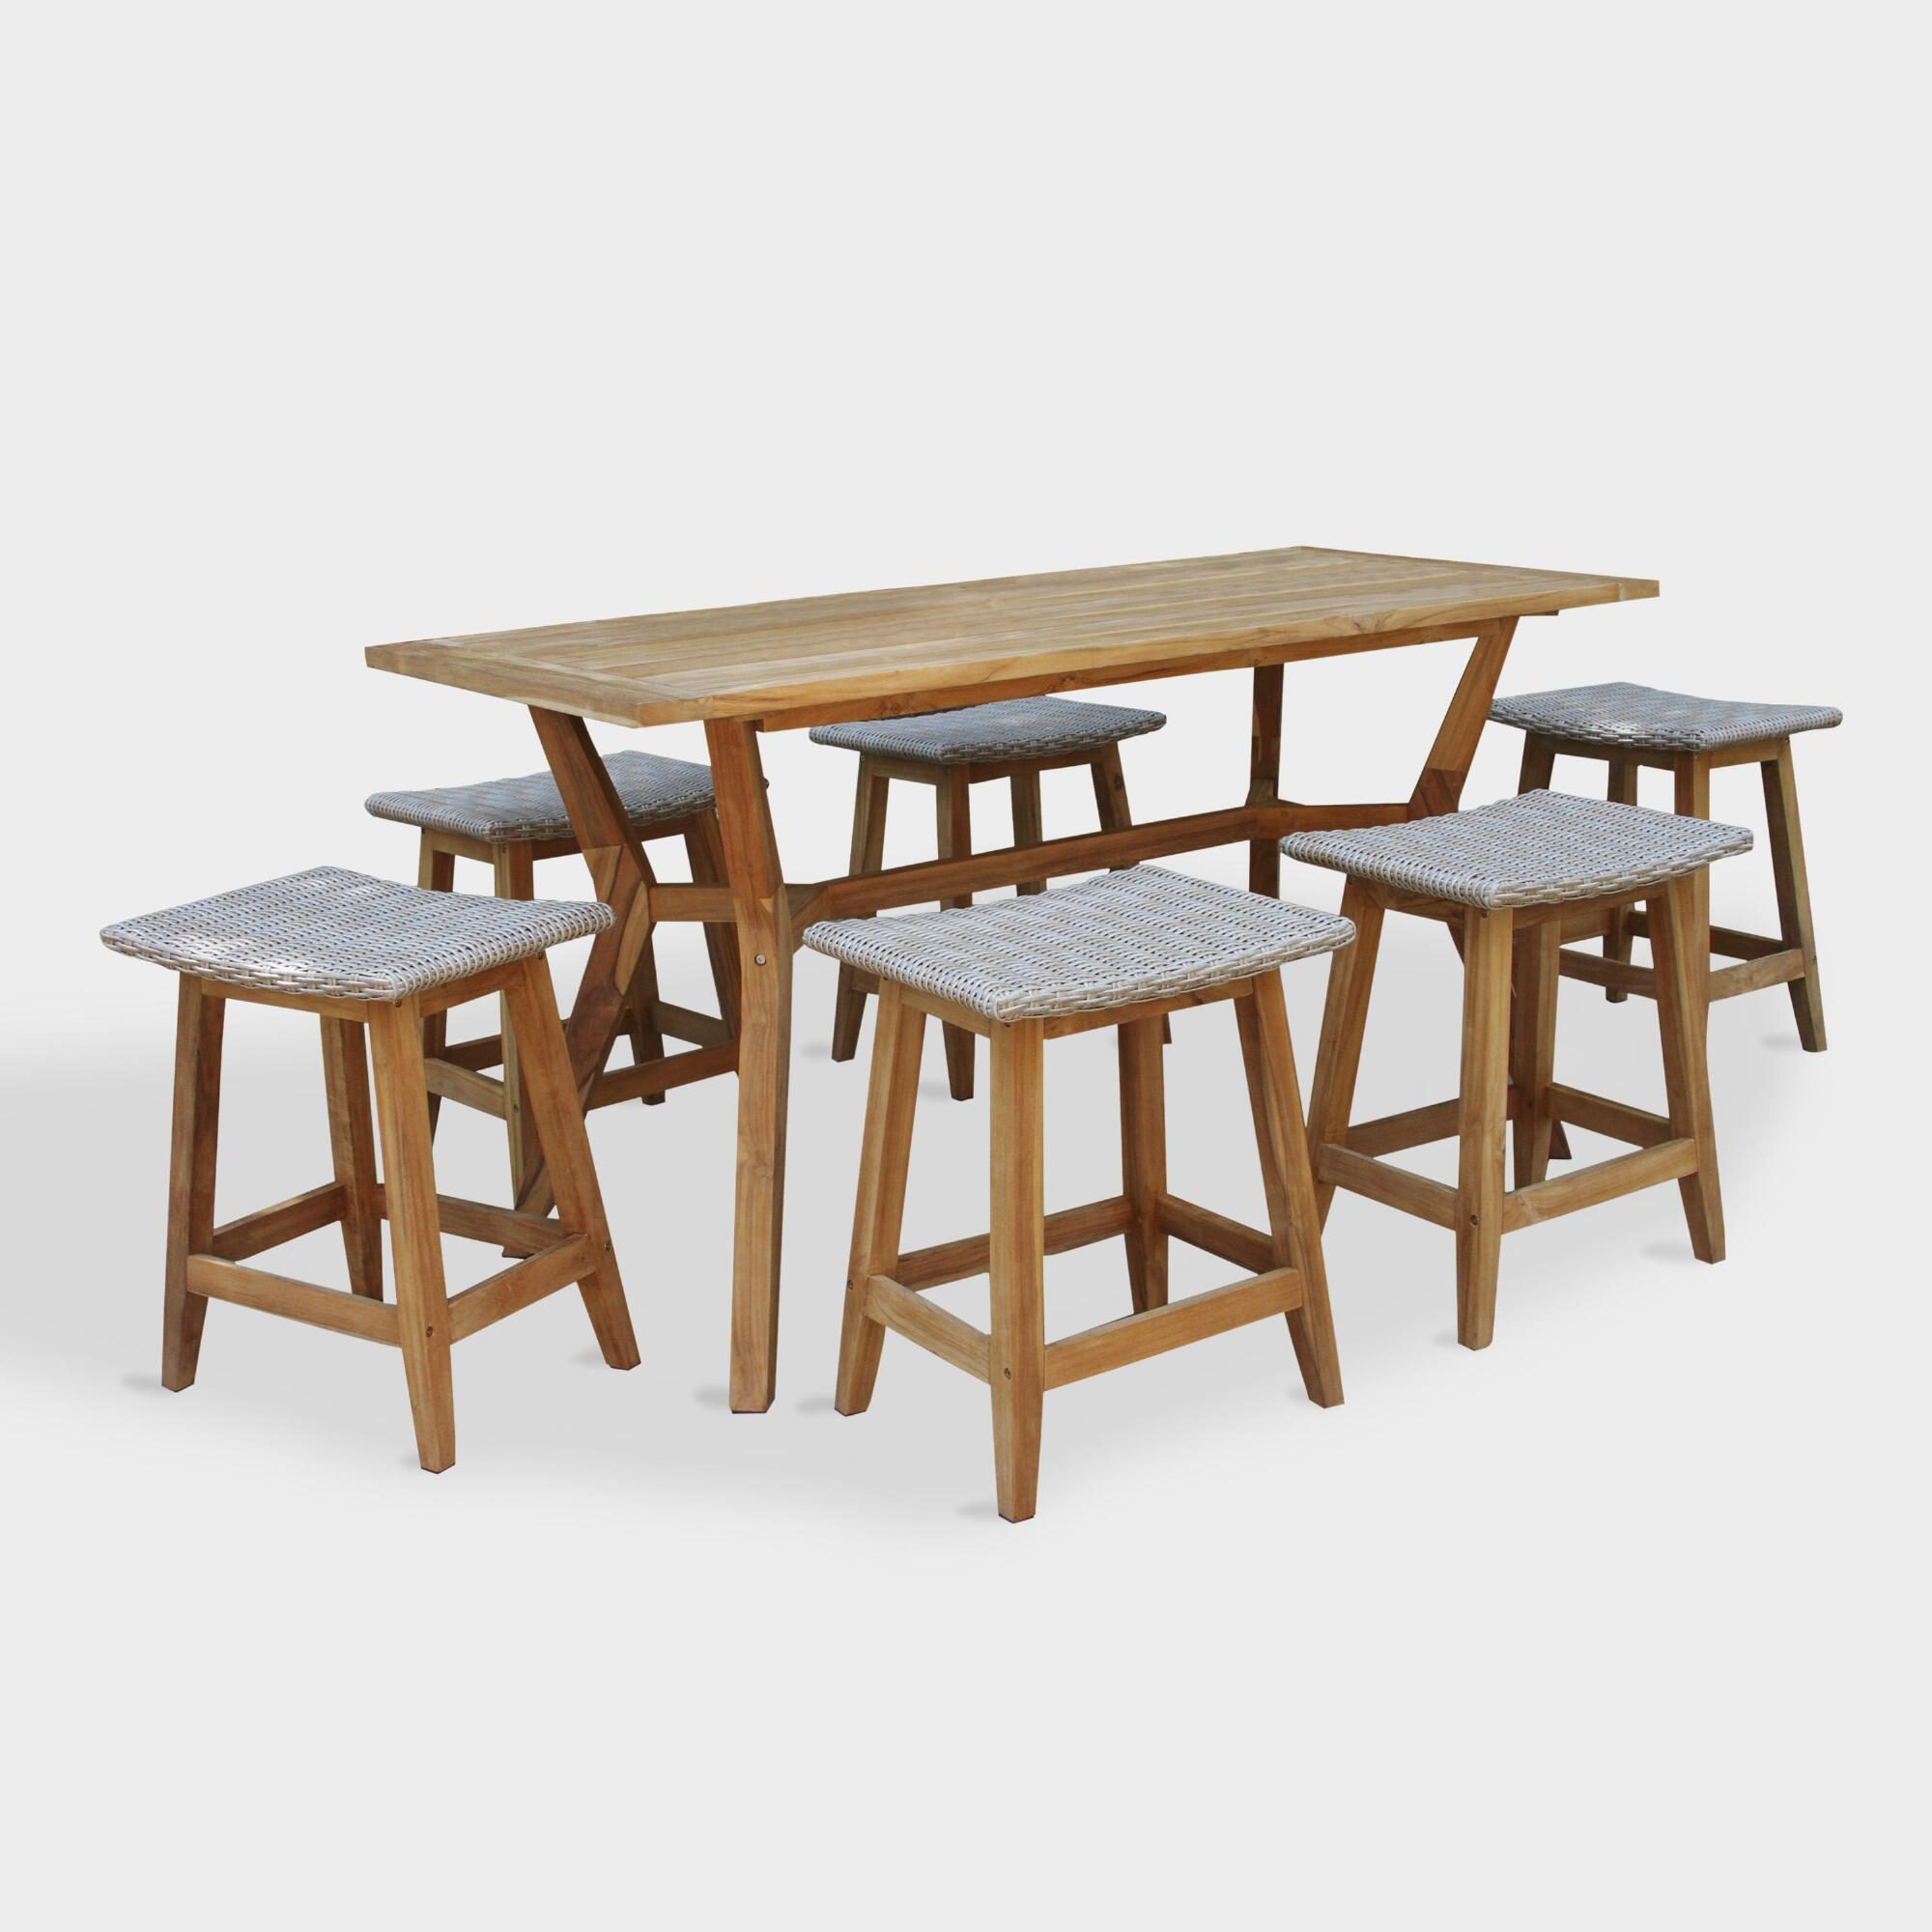 Teak Wood Nash Outdoor Patio Counter Height Dining Collection by World Market